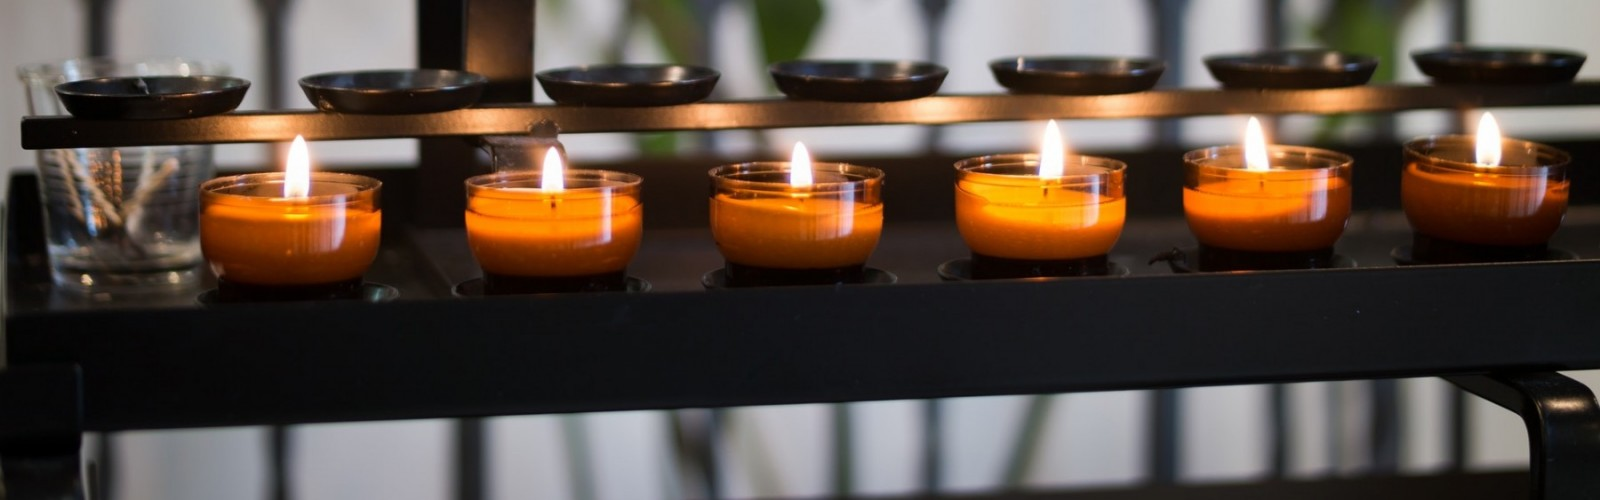 Tea lights on metal shelf - Unity in Frederick